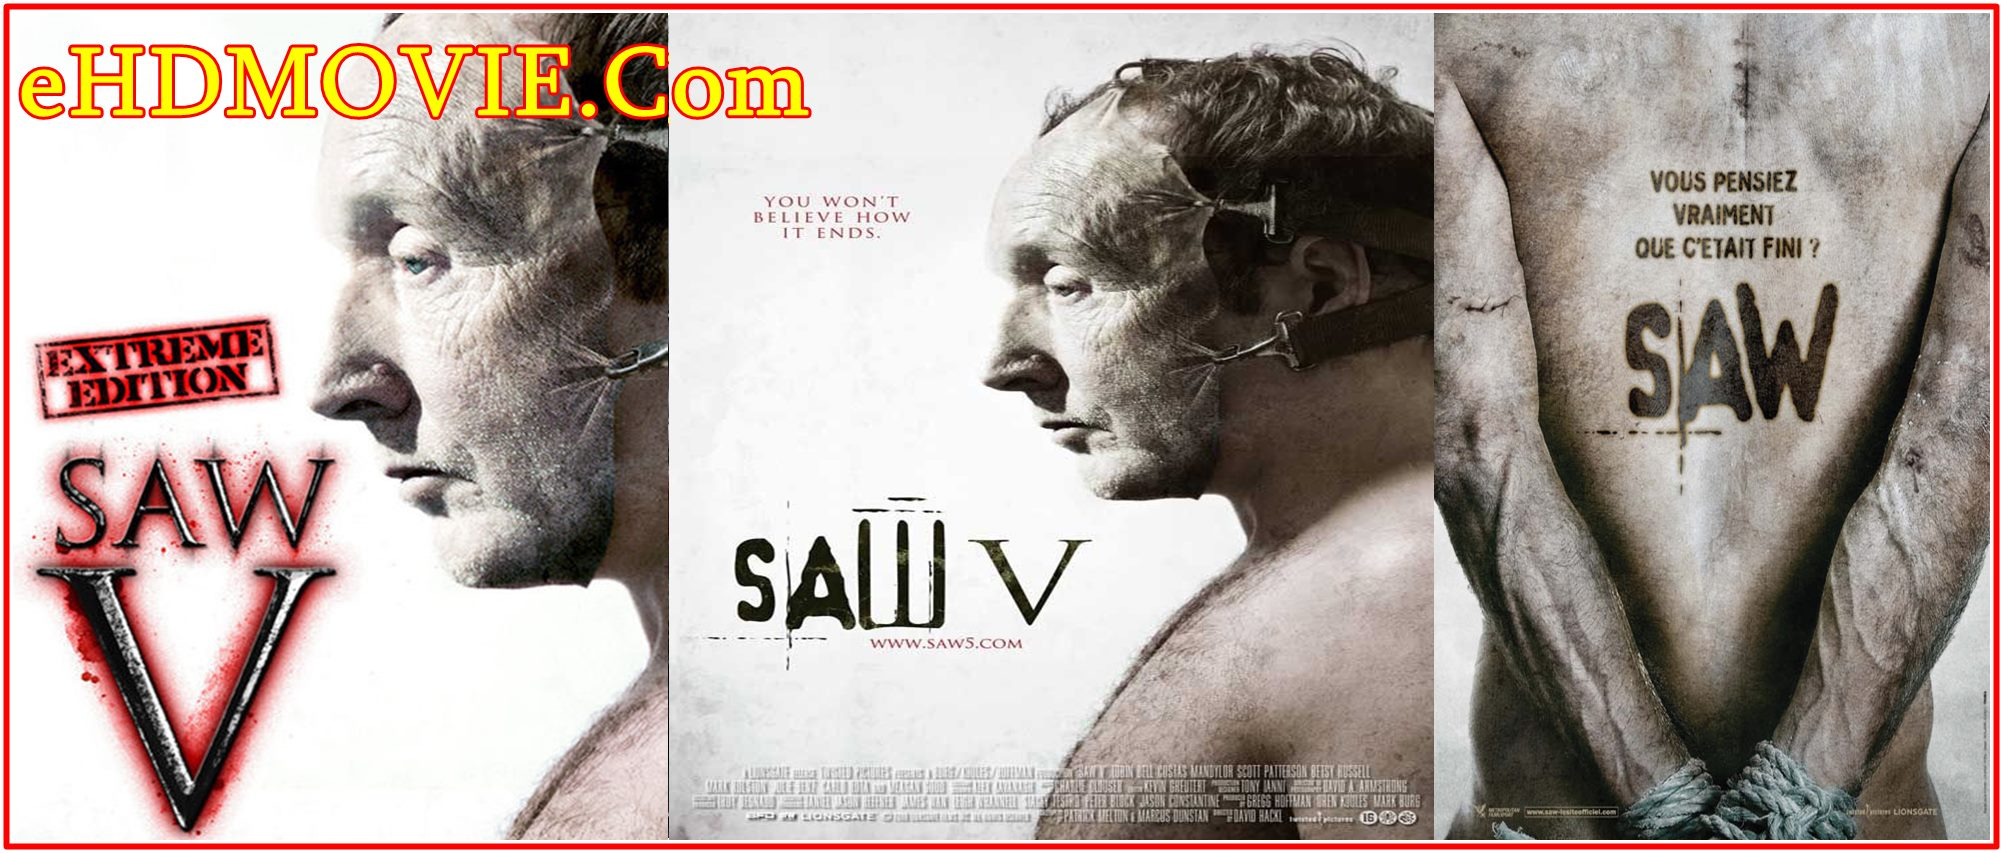 Saw V 2008 Full Movie English 720p – 480p ORG BRRip 350MB – 750MB ESubs Free Download